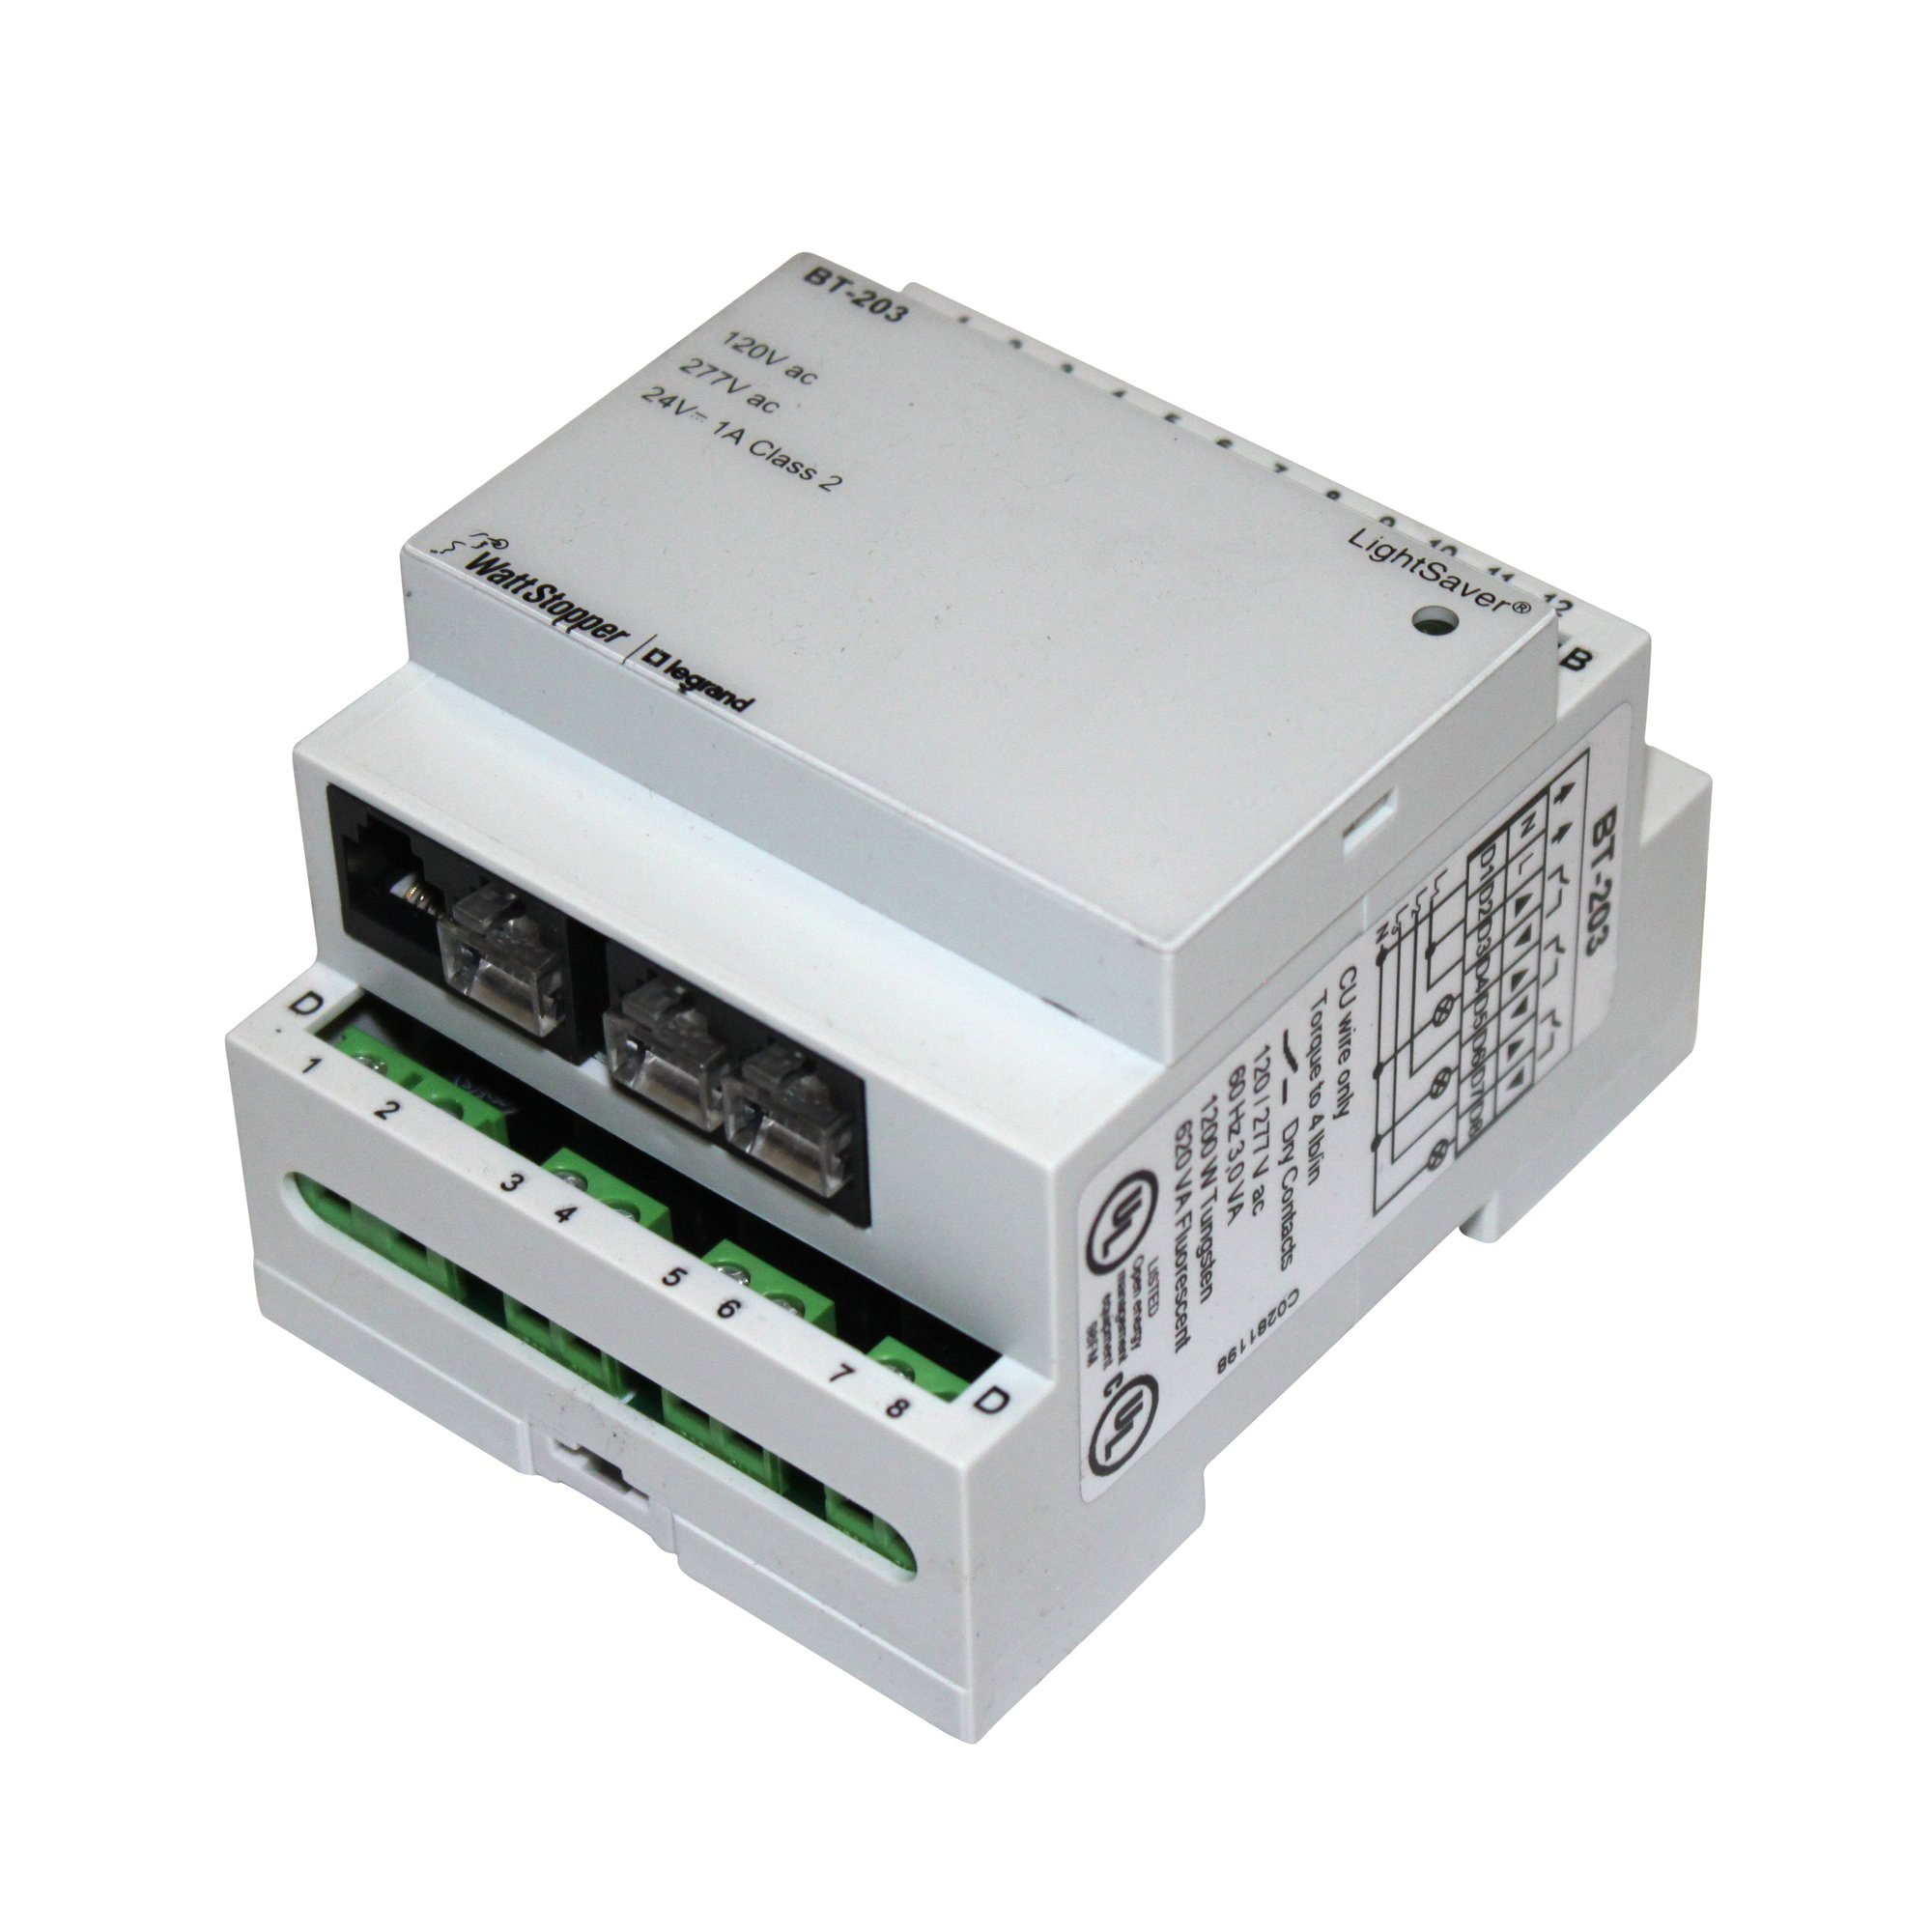 WattStopper Lightsaver Power Pack BT-203 powers the LightSaver LCO-203 and LCD-203 control modules